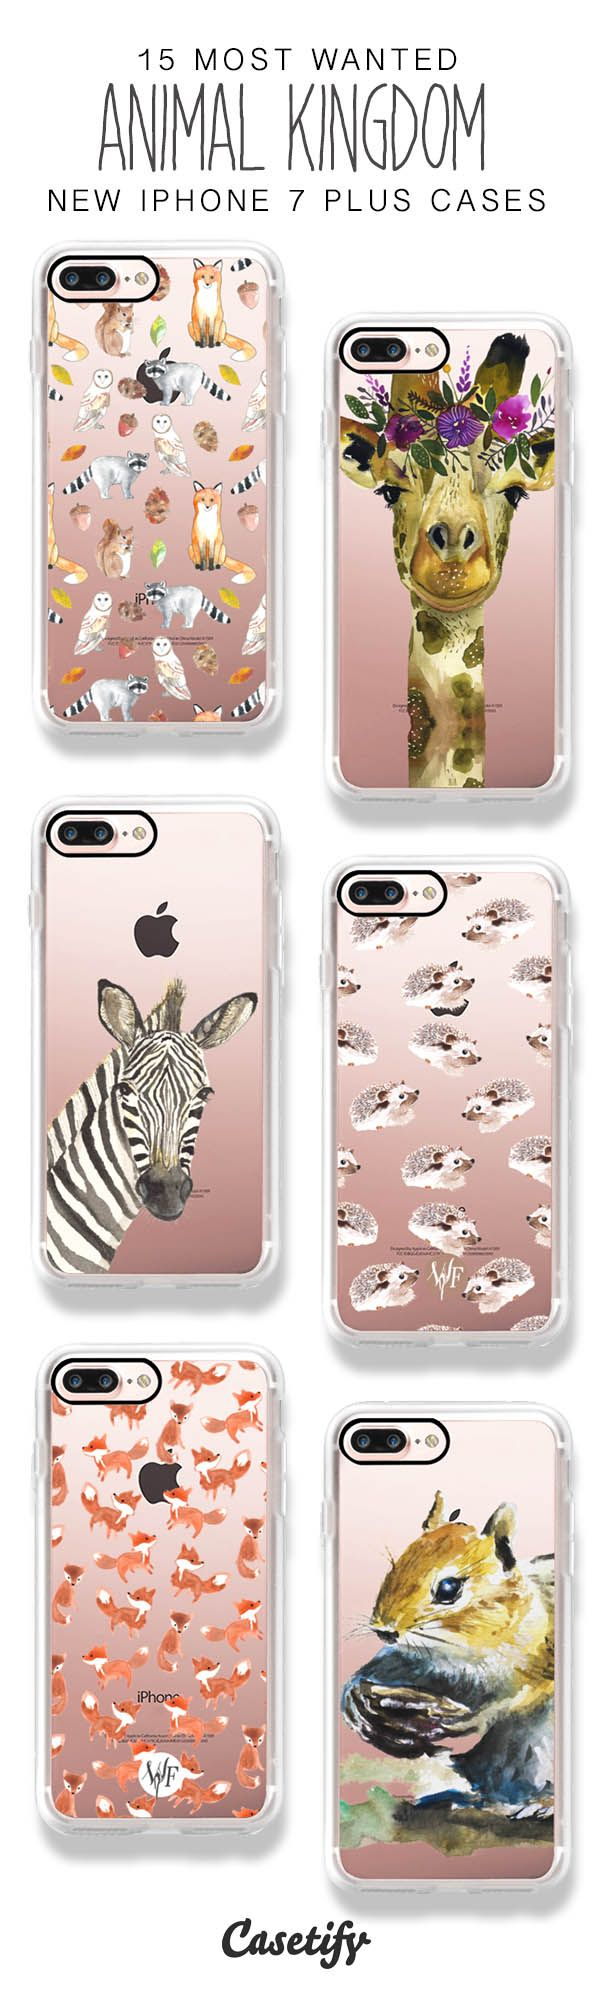 Here Comes the Animals Kingdom! 15 Most Wanted Animal iPhone 7 / iPhone 7 Plus Phone Cases here > https://www.casetify.com/artworks/itDNpF6Bkm